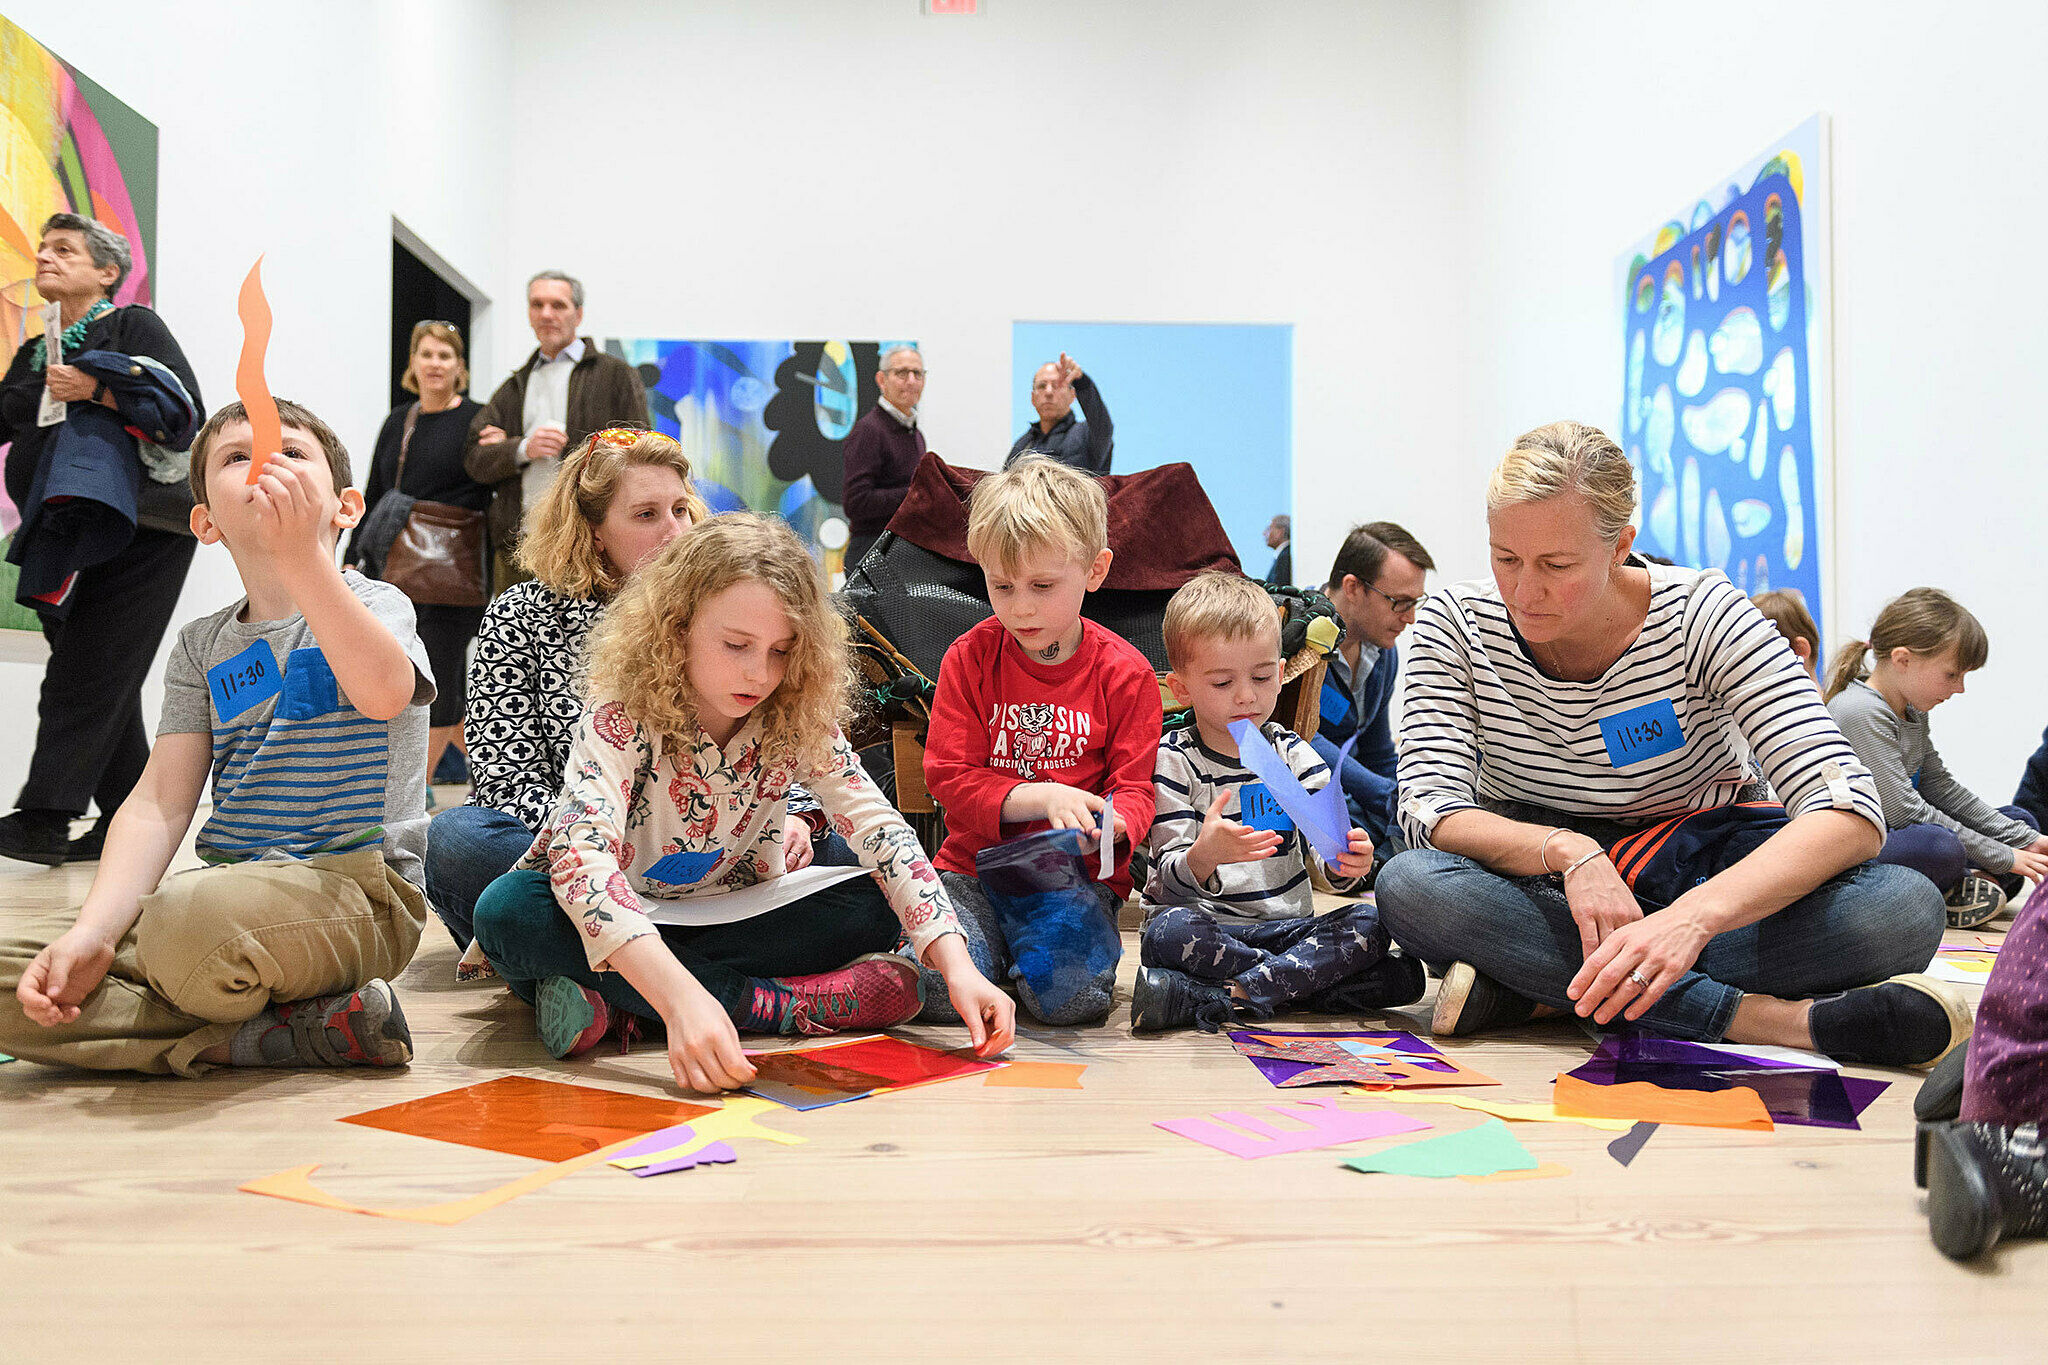 Children engaging with works on view